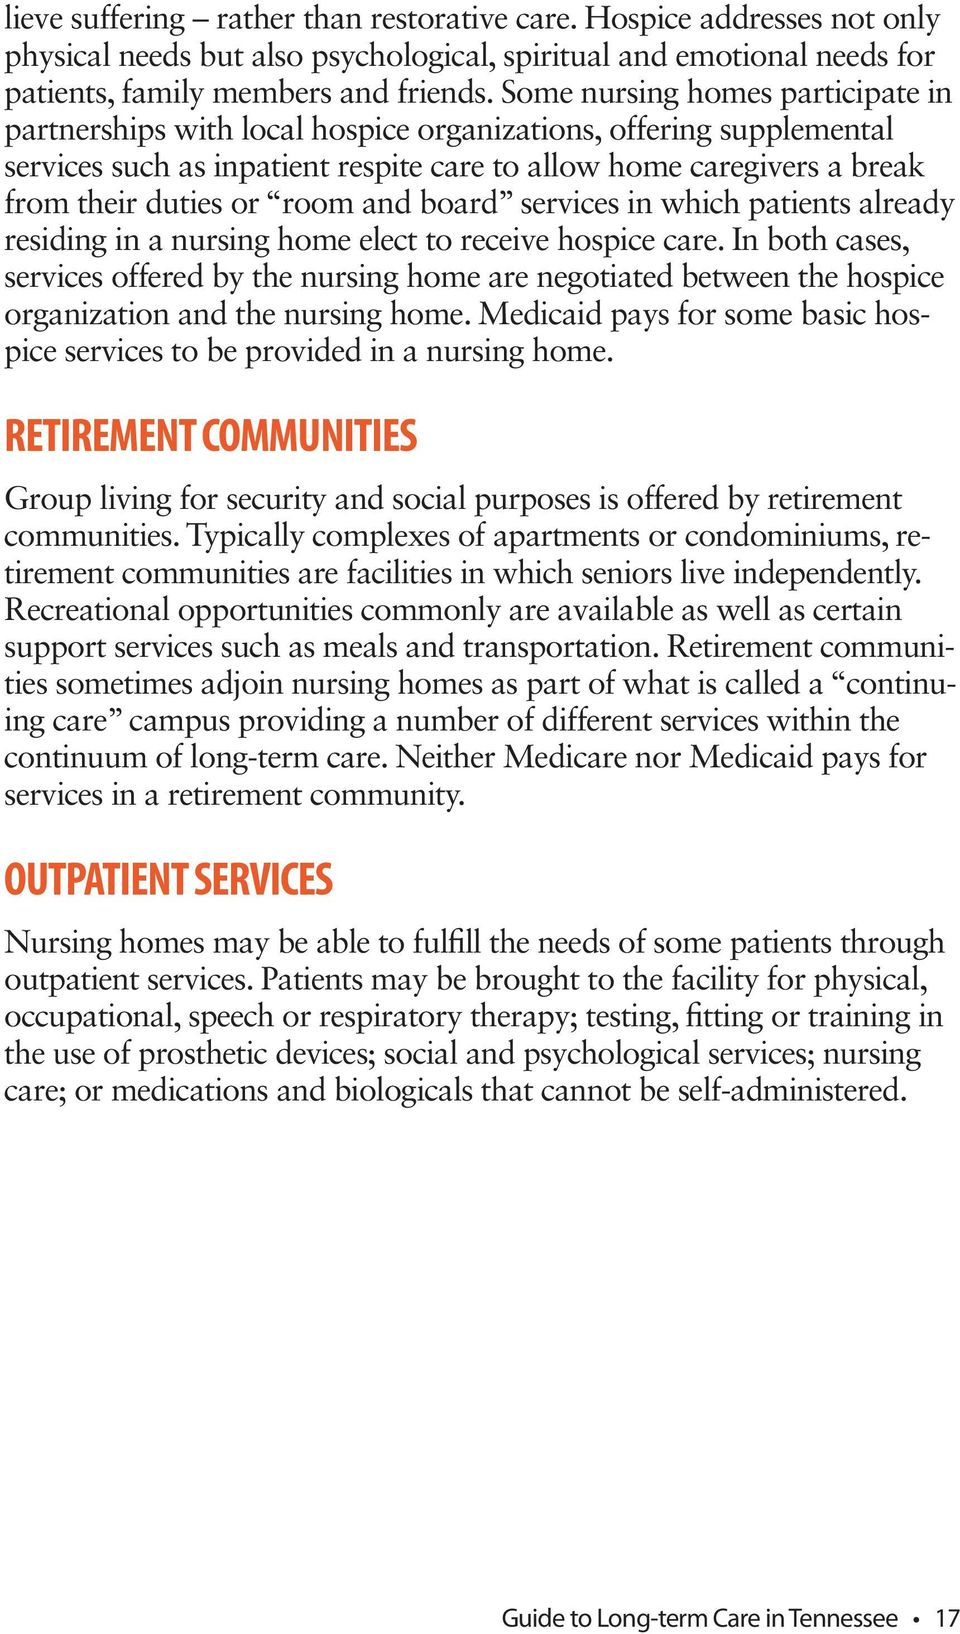 room and board services in which patients already residing in a nursing home elect to receive hospice care.